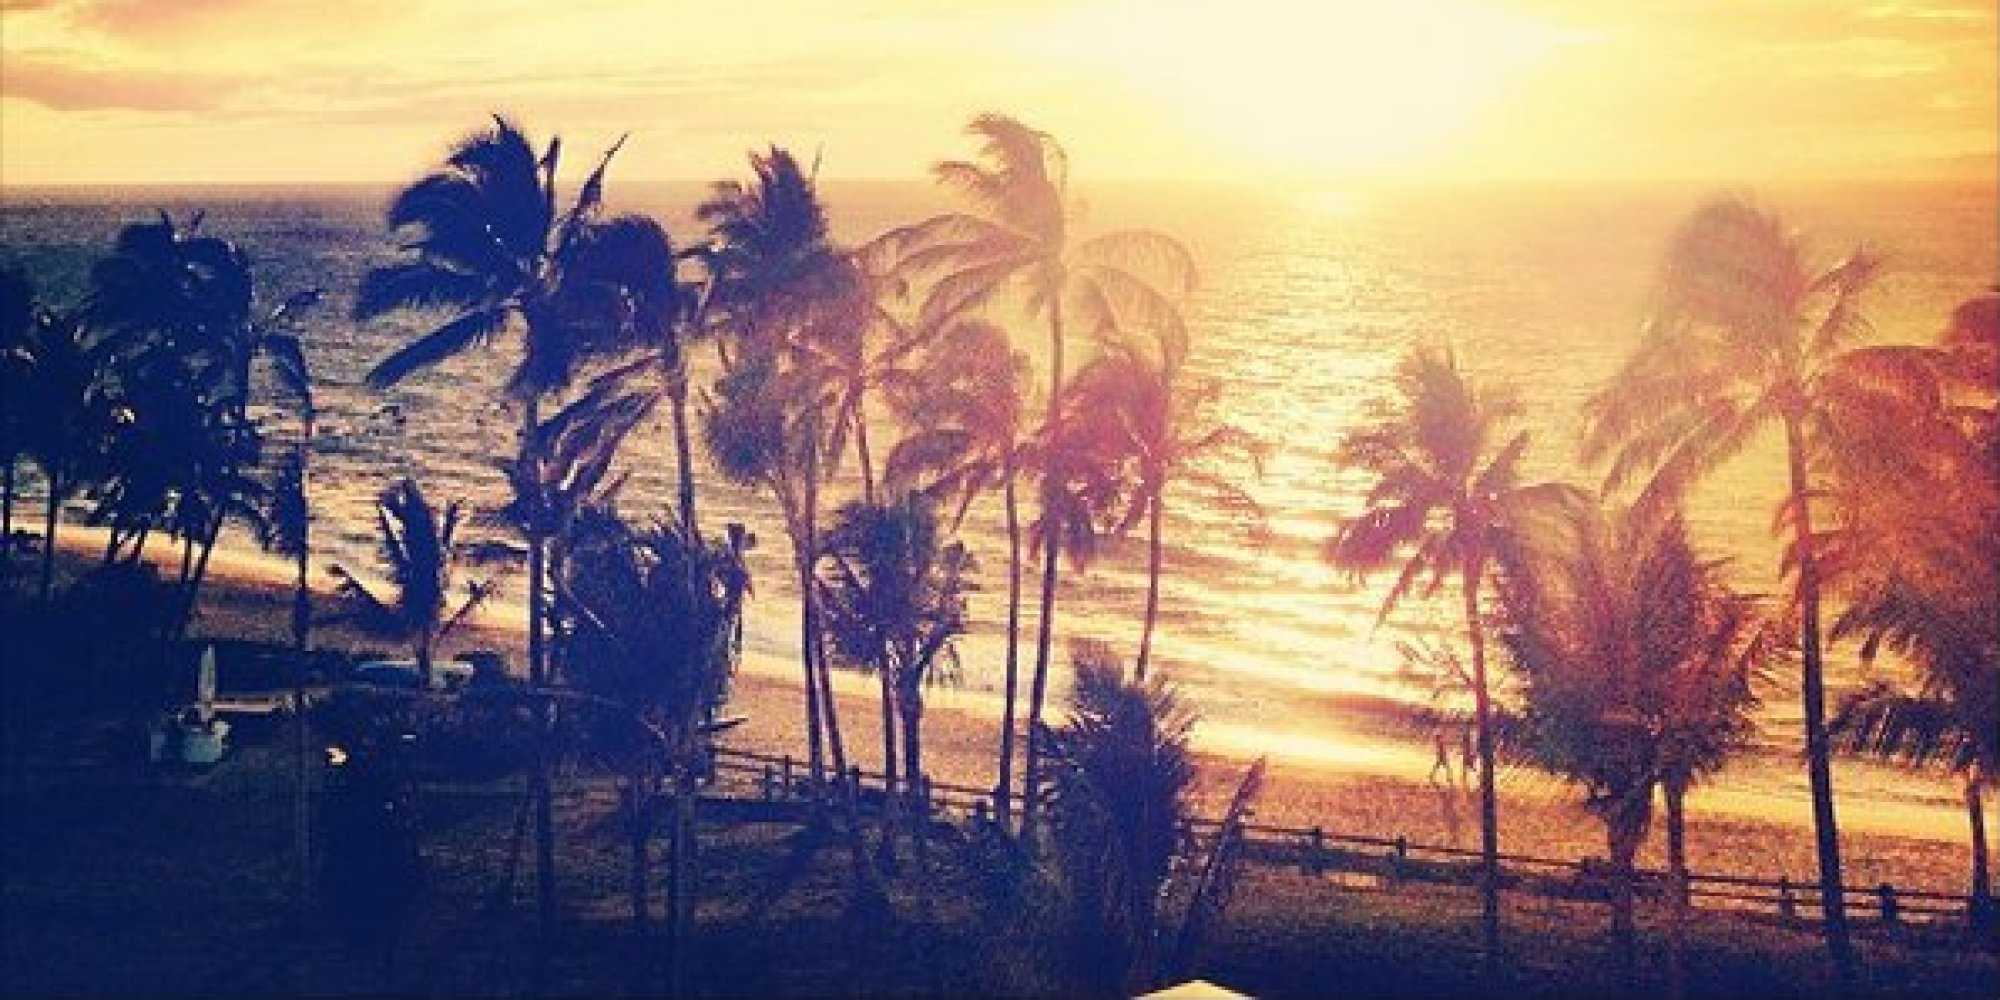 Palm Trees Sunset Tumblr Iphone Wallpaper Lovethispic - Los Angeles Palm Trees Photography , HD Wallpaper & Backgrounds